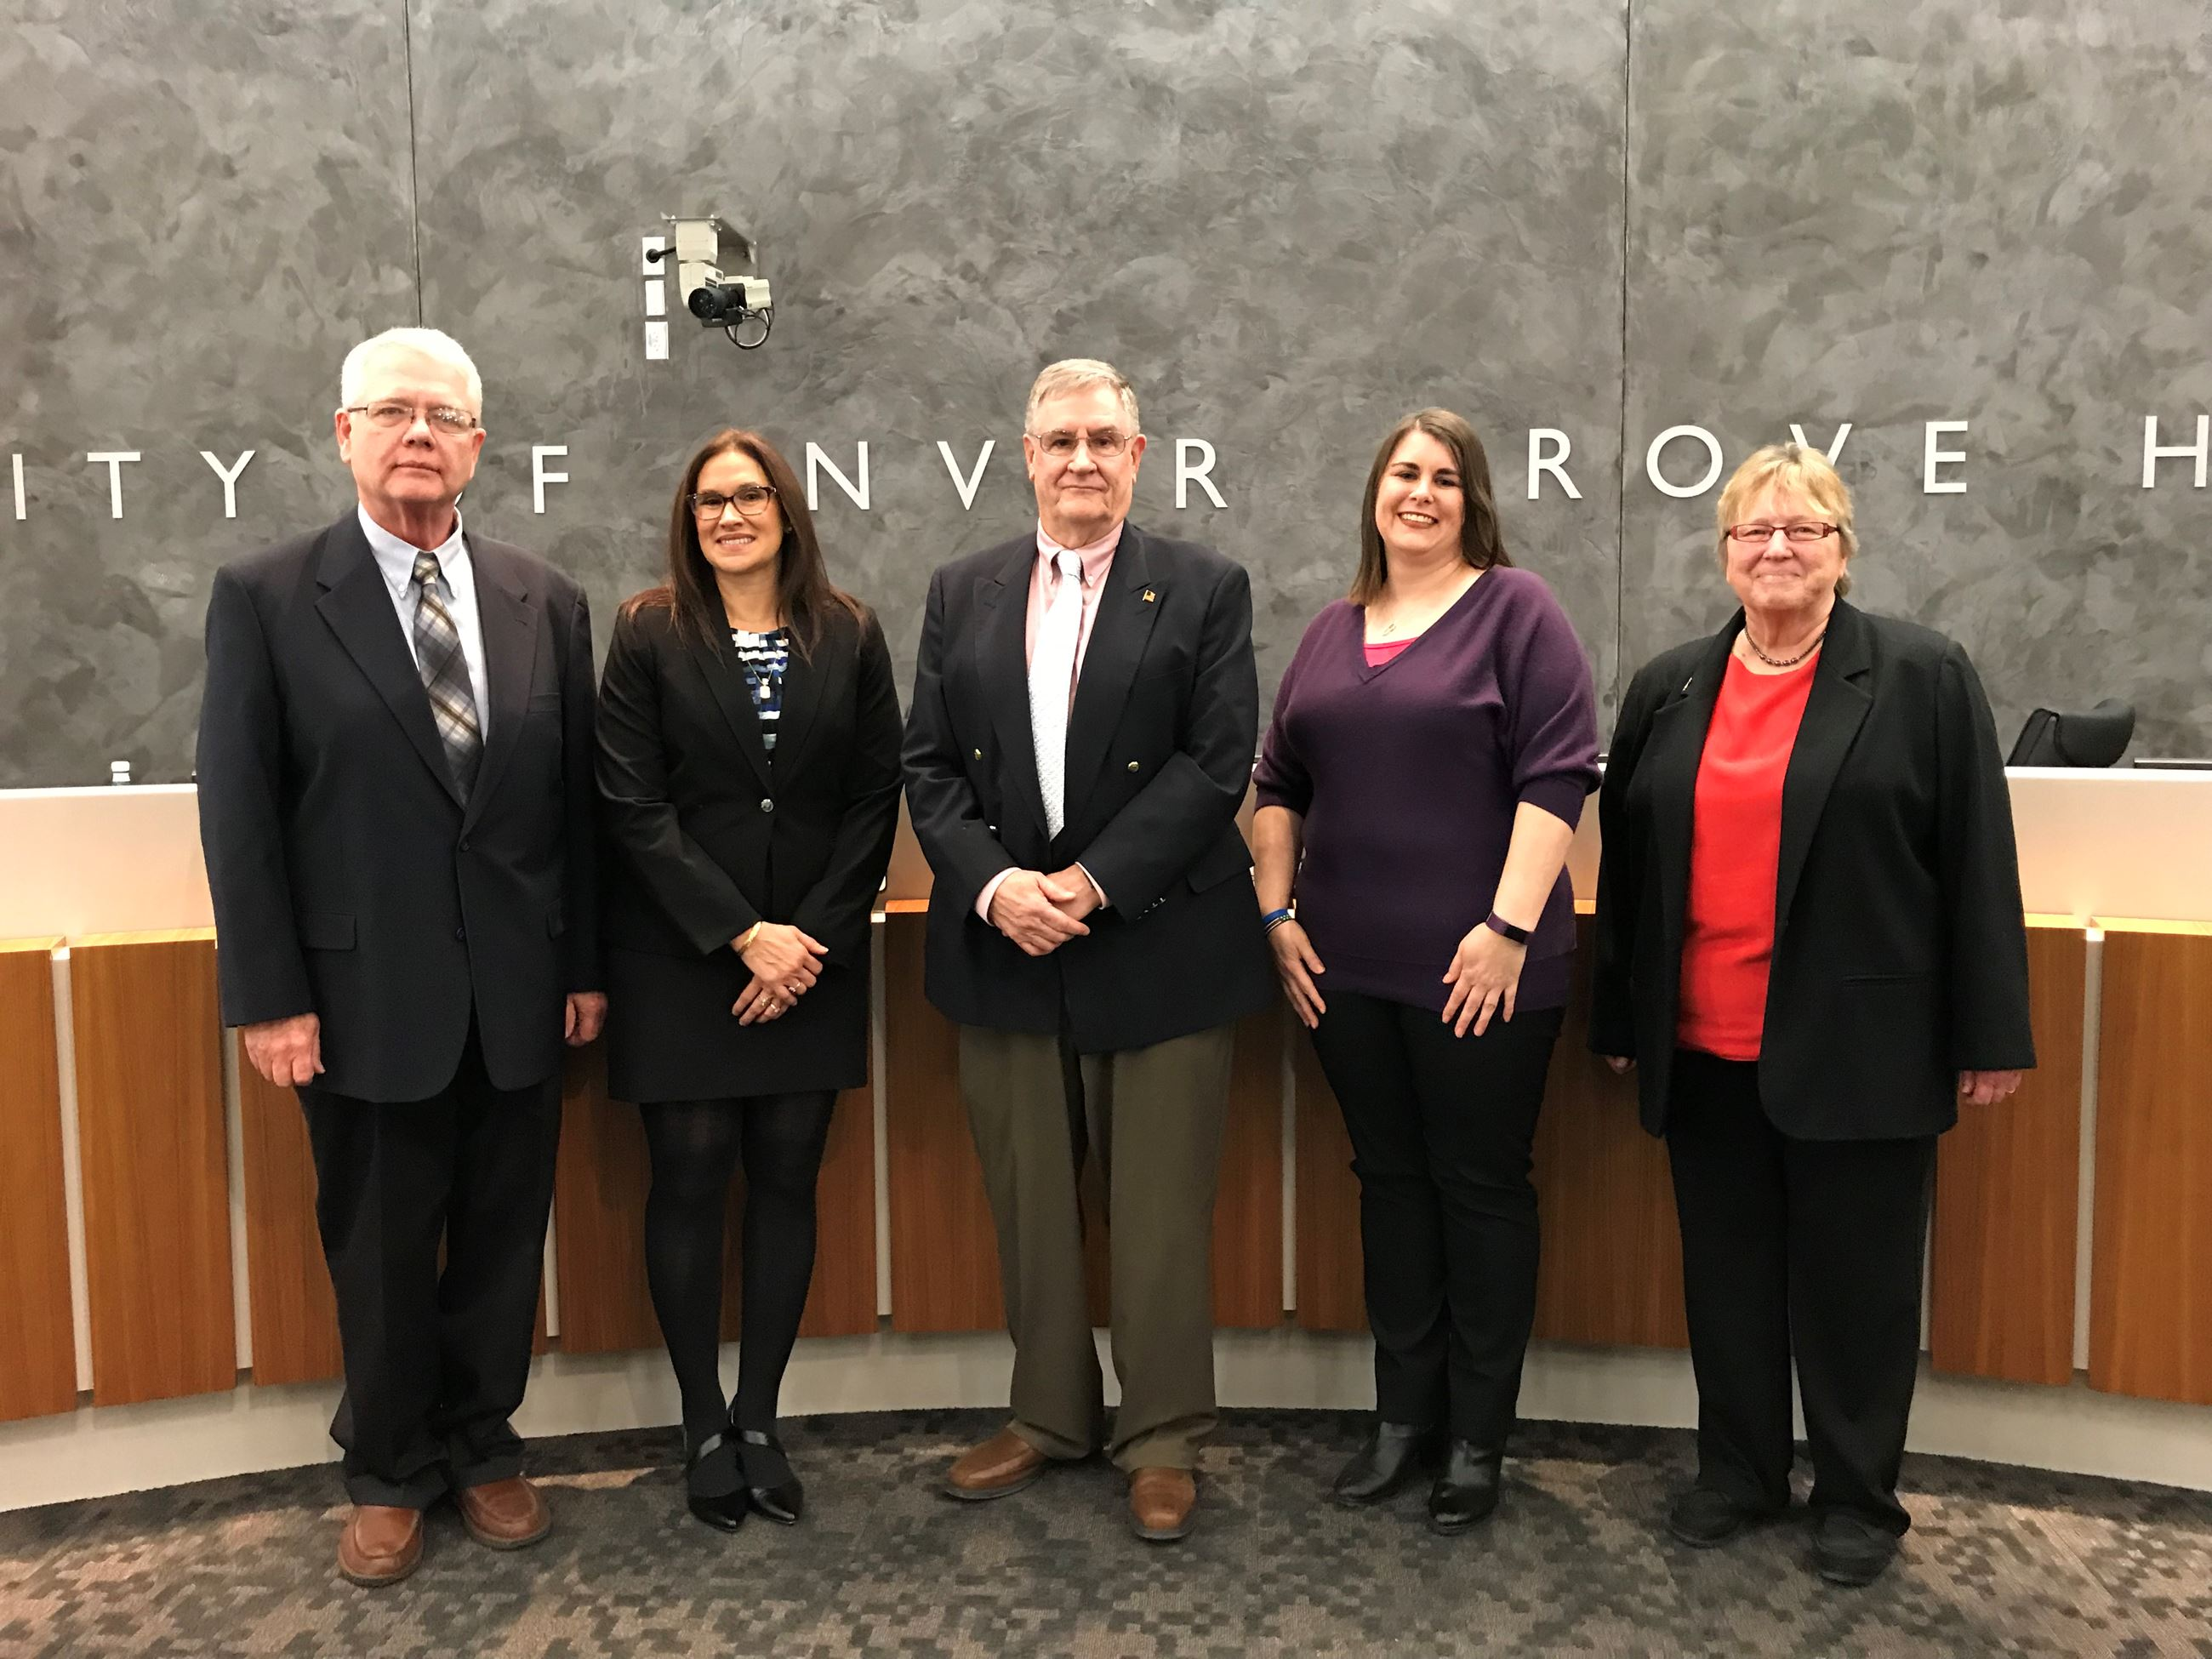 Image of Inver Grove Heights City Council